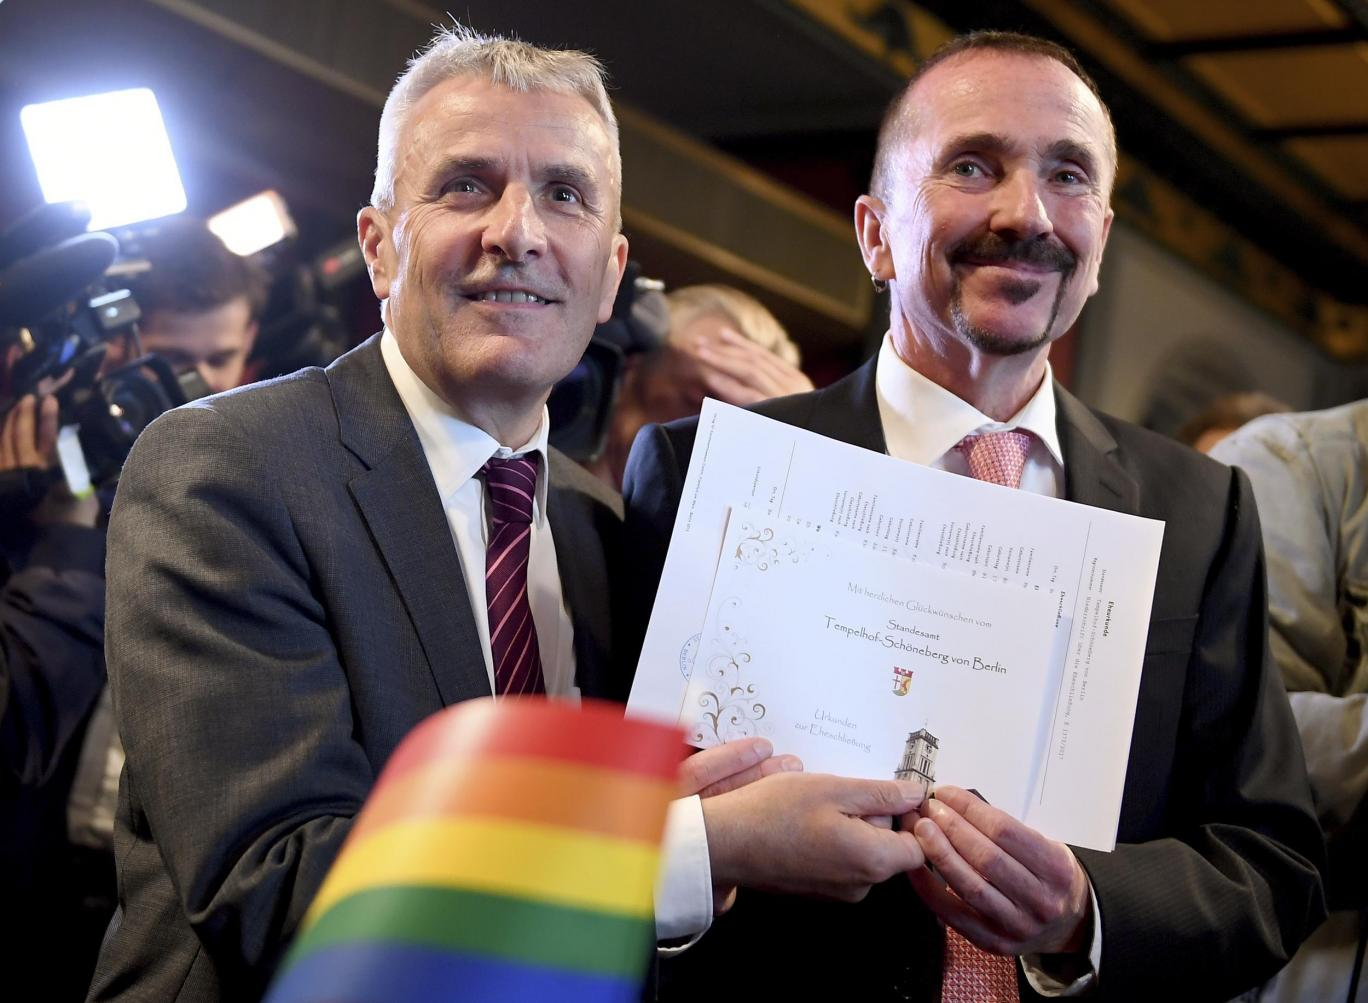 Photos: Germany holds first ever same-sex marriage in Berlin